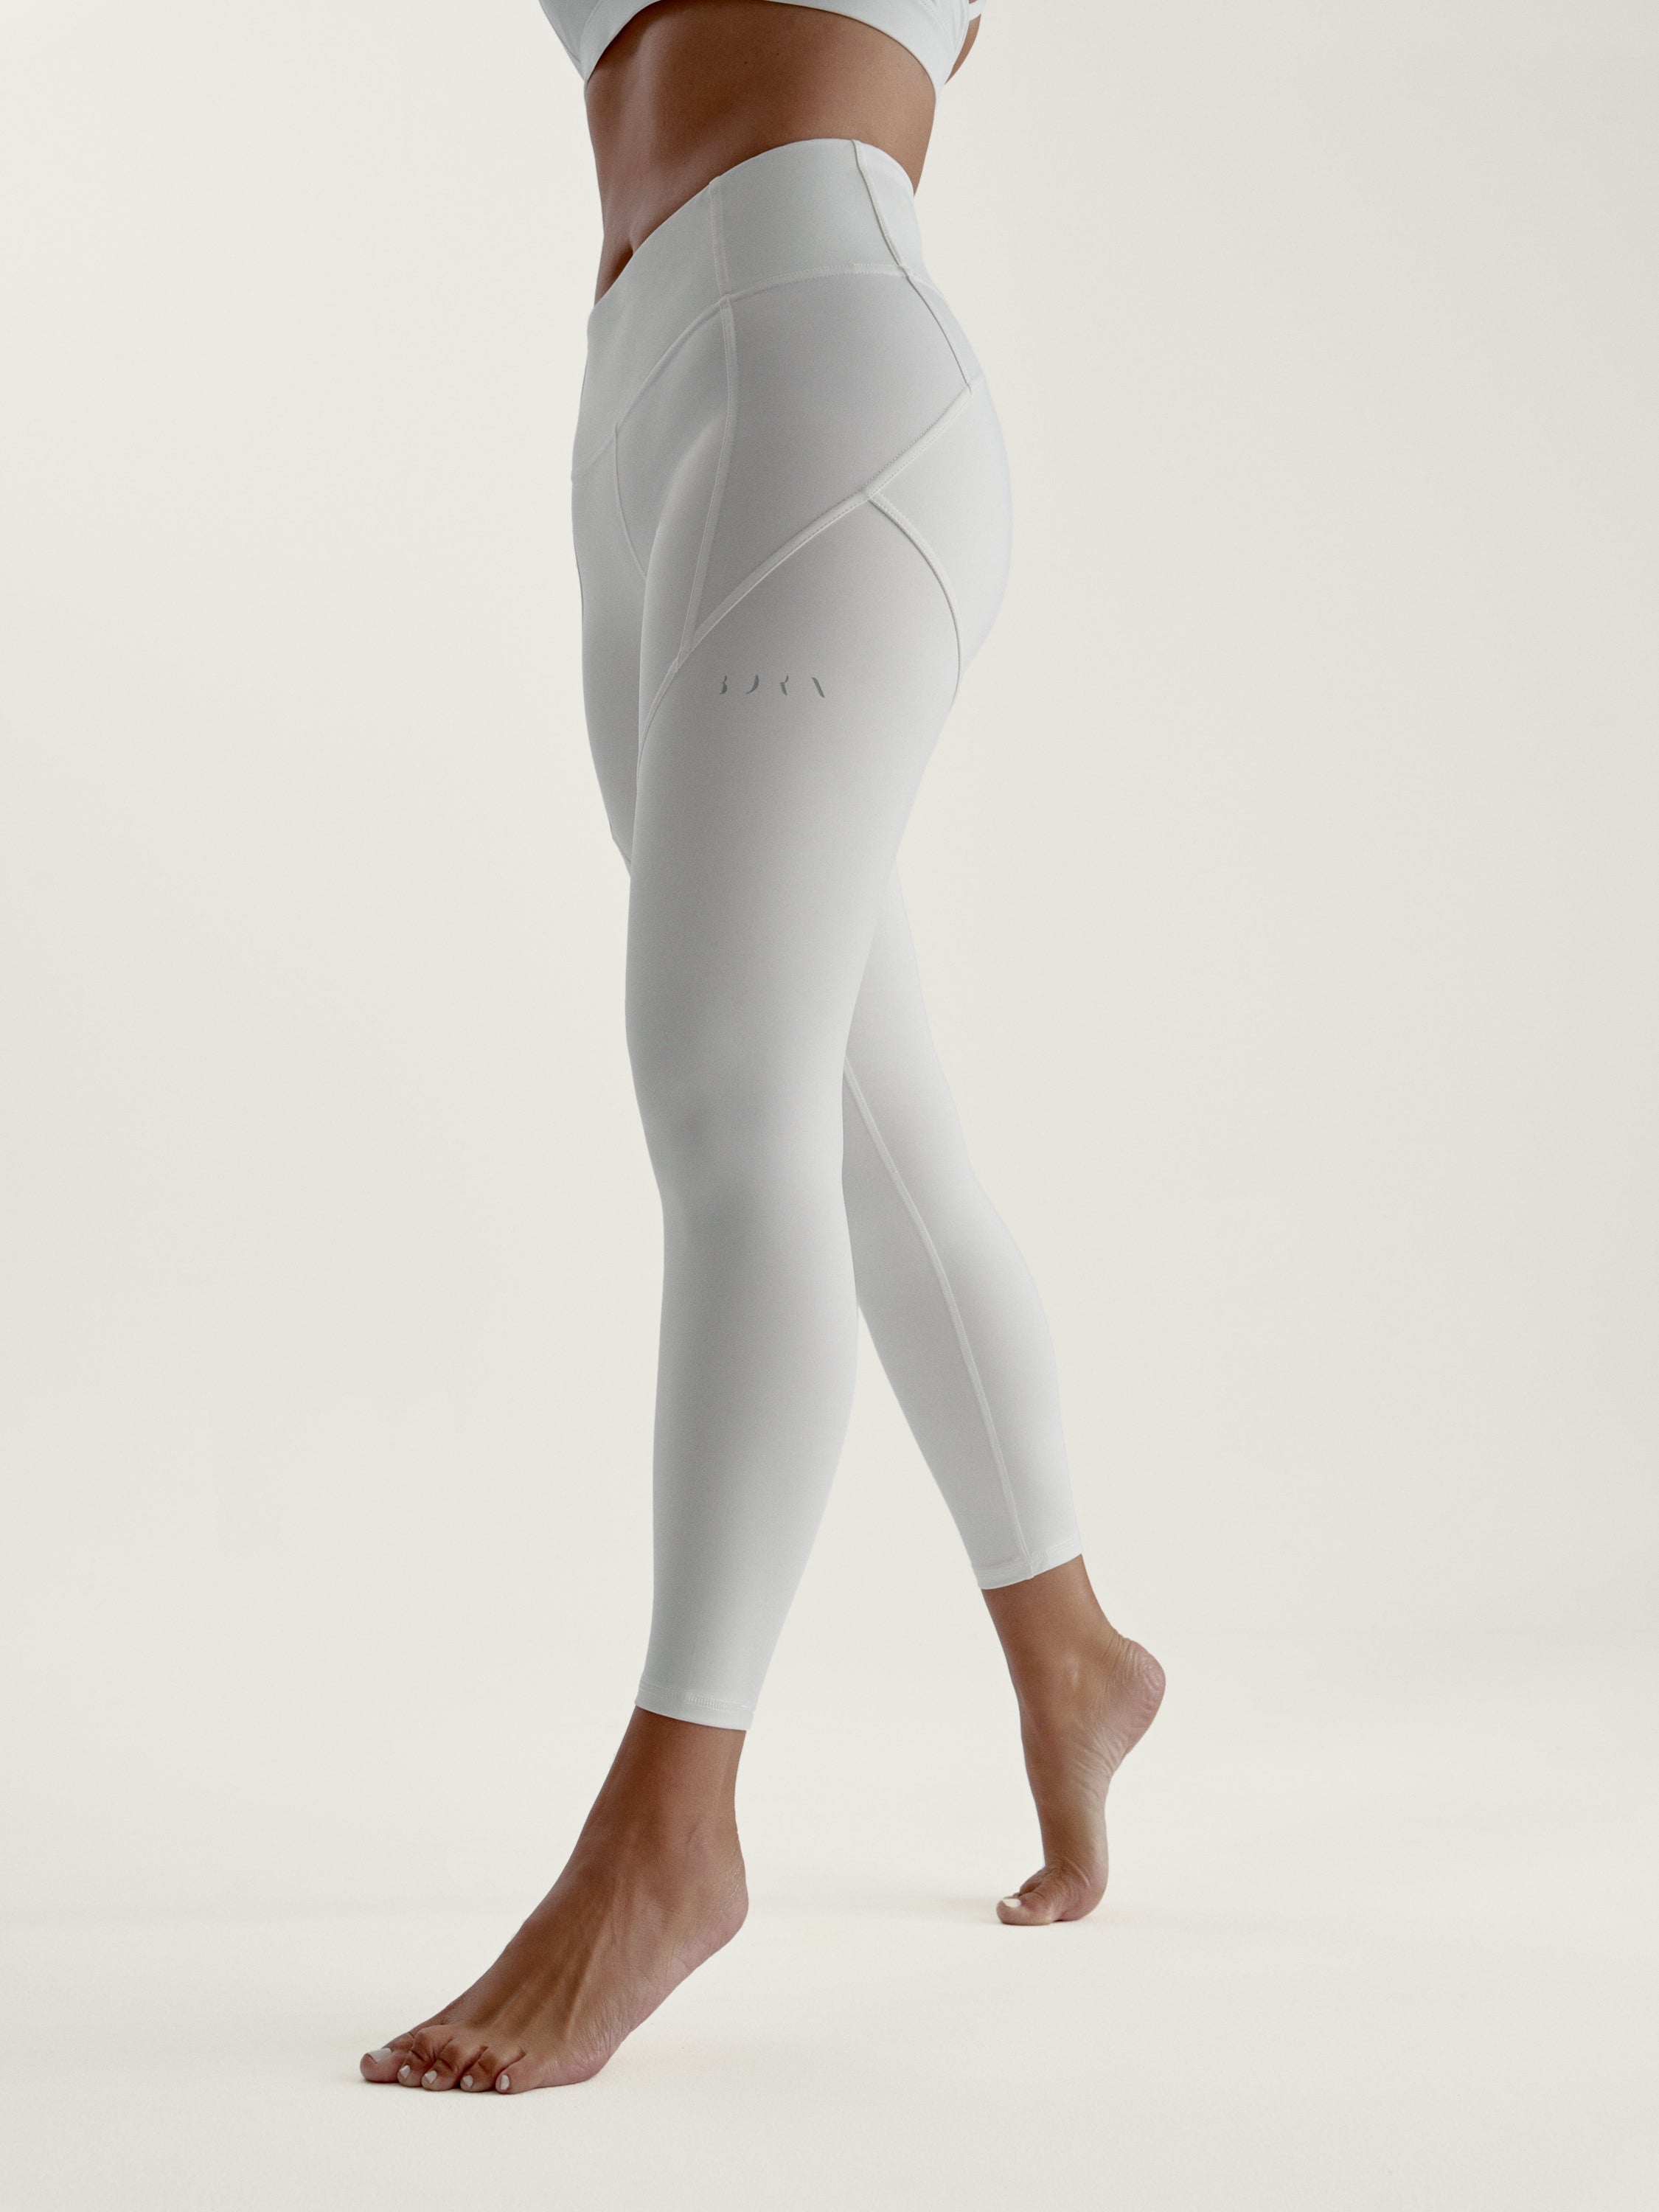 Legging Indi Off White